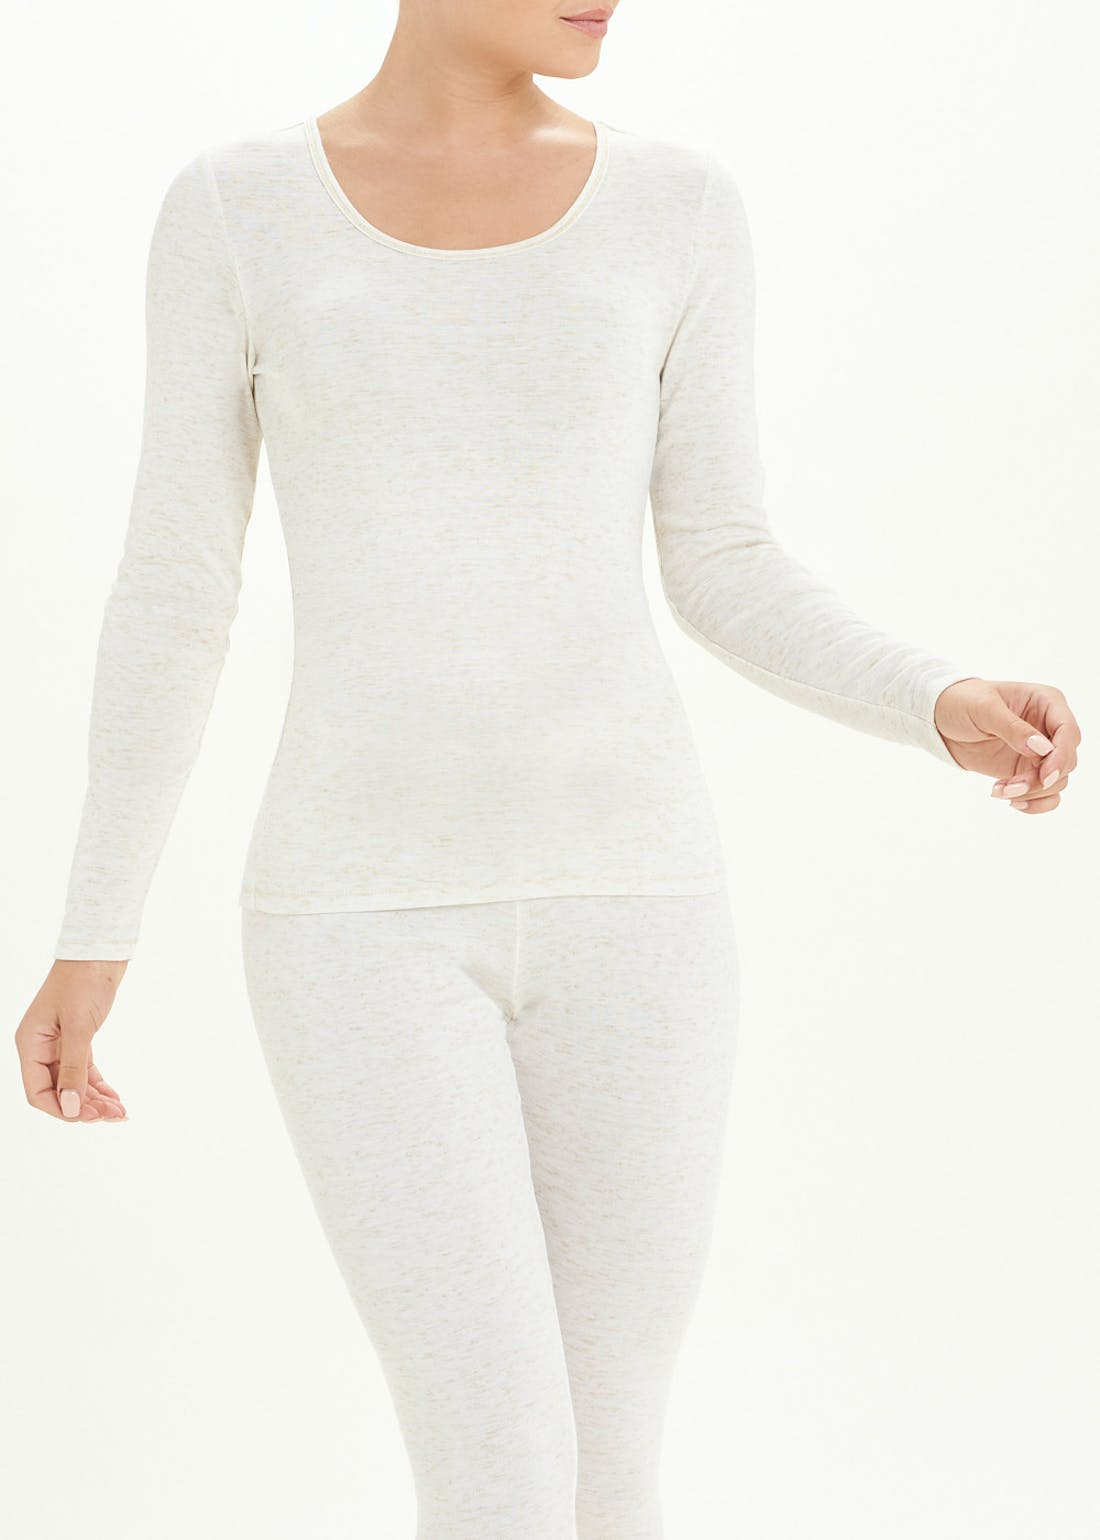 Long Sleeve Sparkle Trim Thermal Top